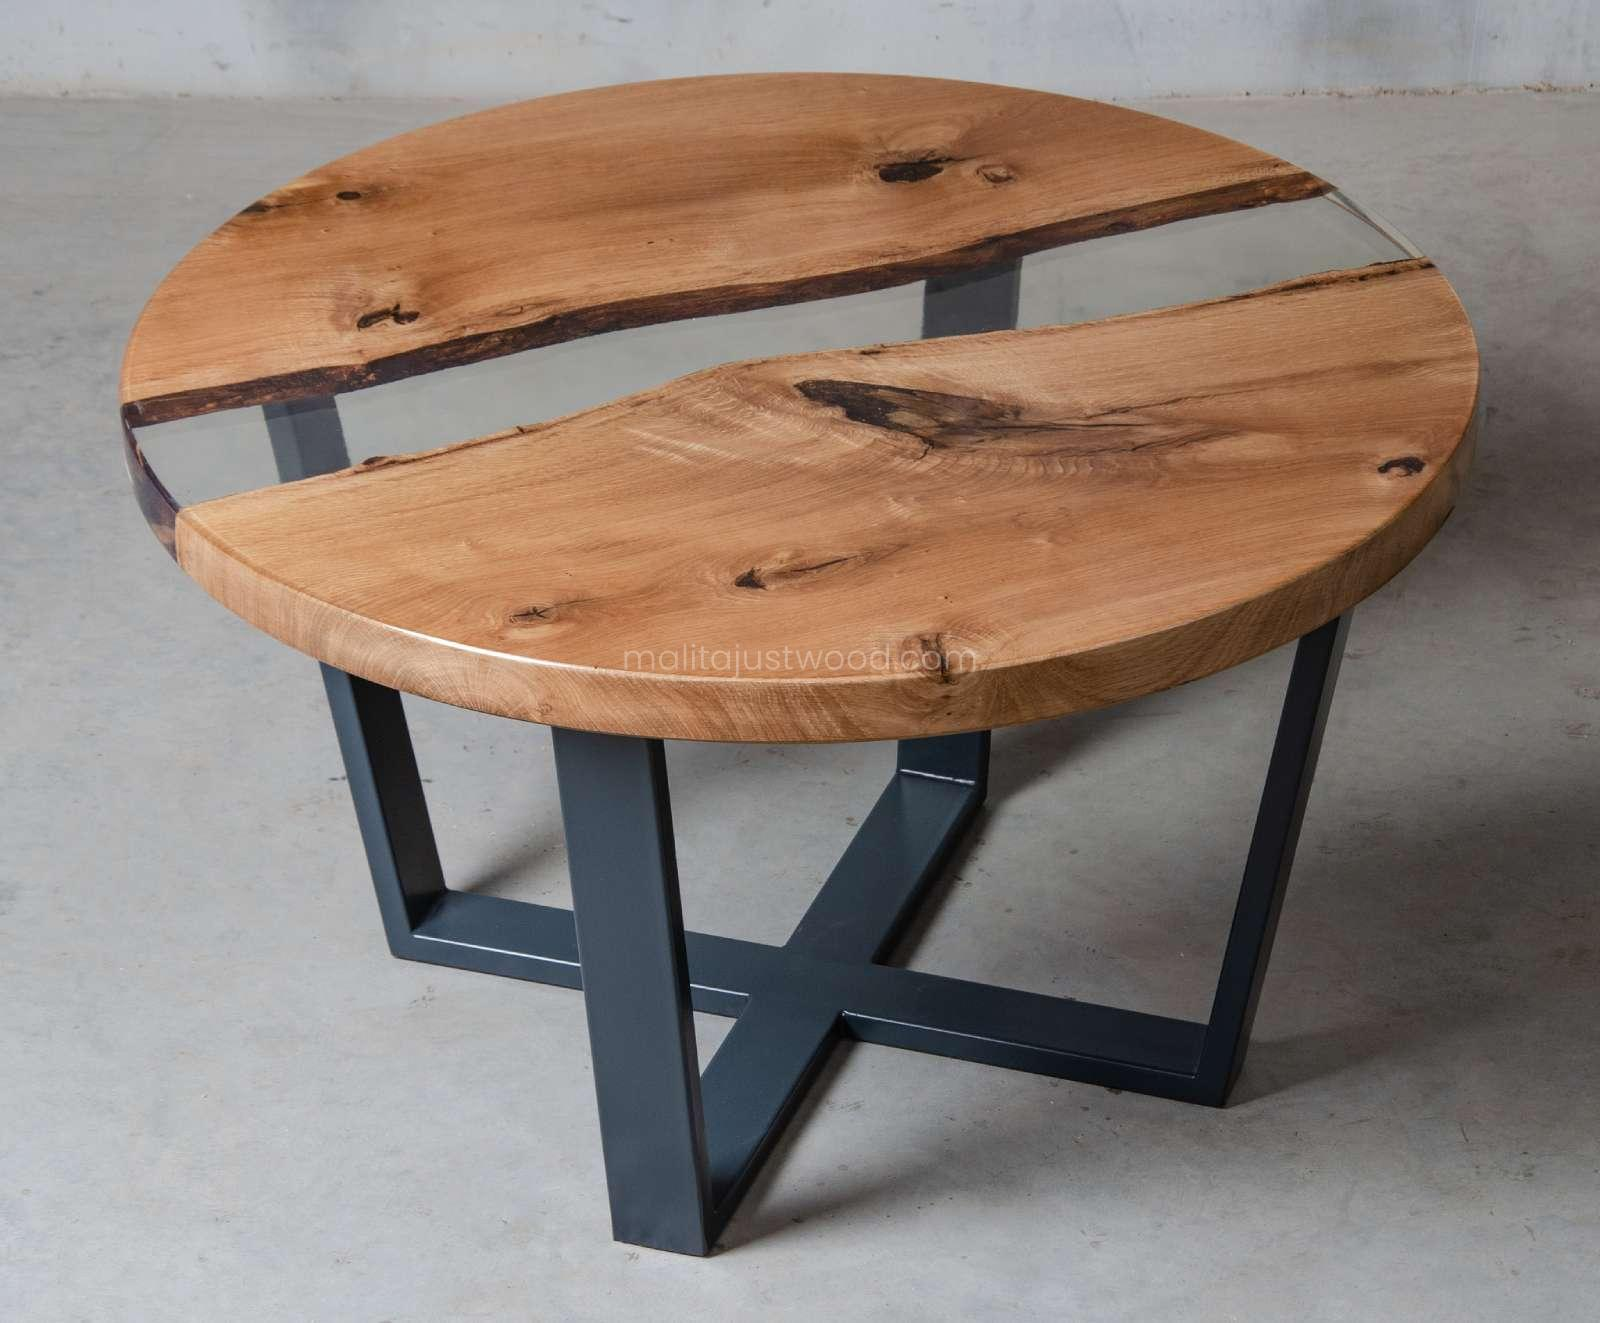 wooden coffee table Puella with resin and steel legs